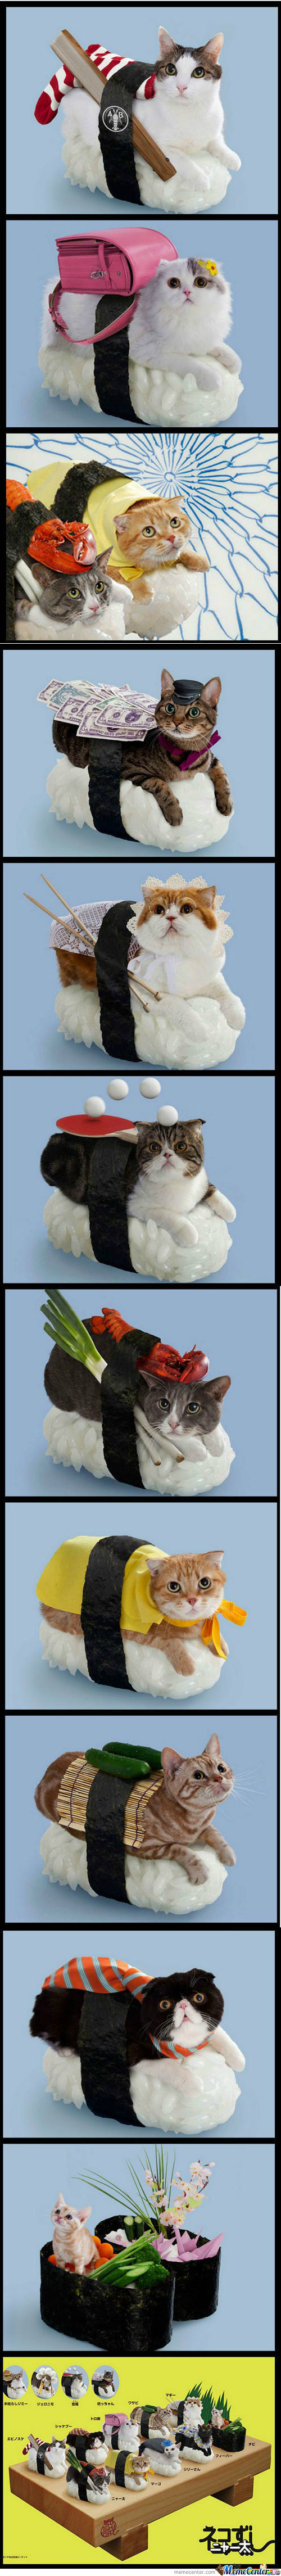 Sushi Cats Compilation